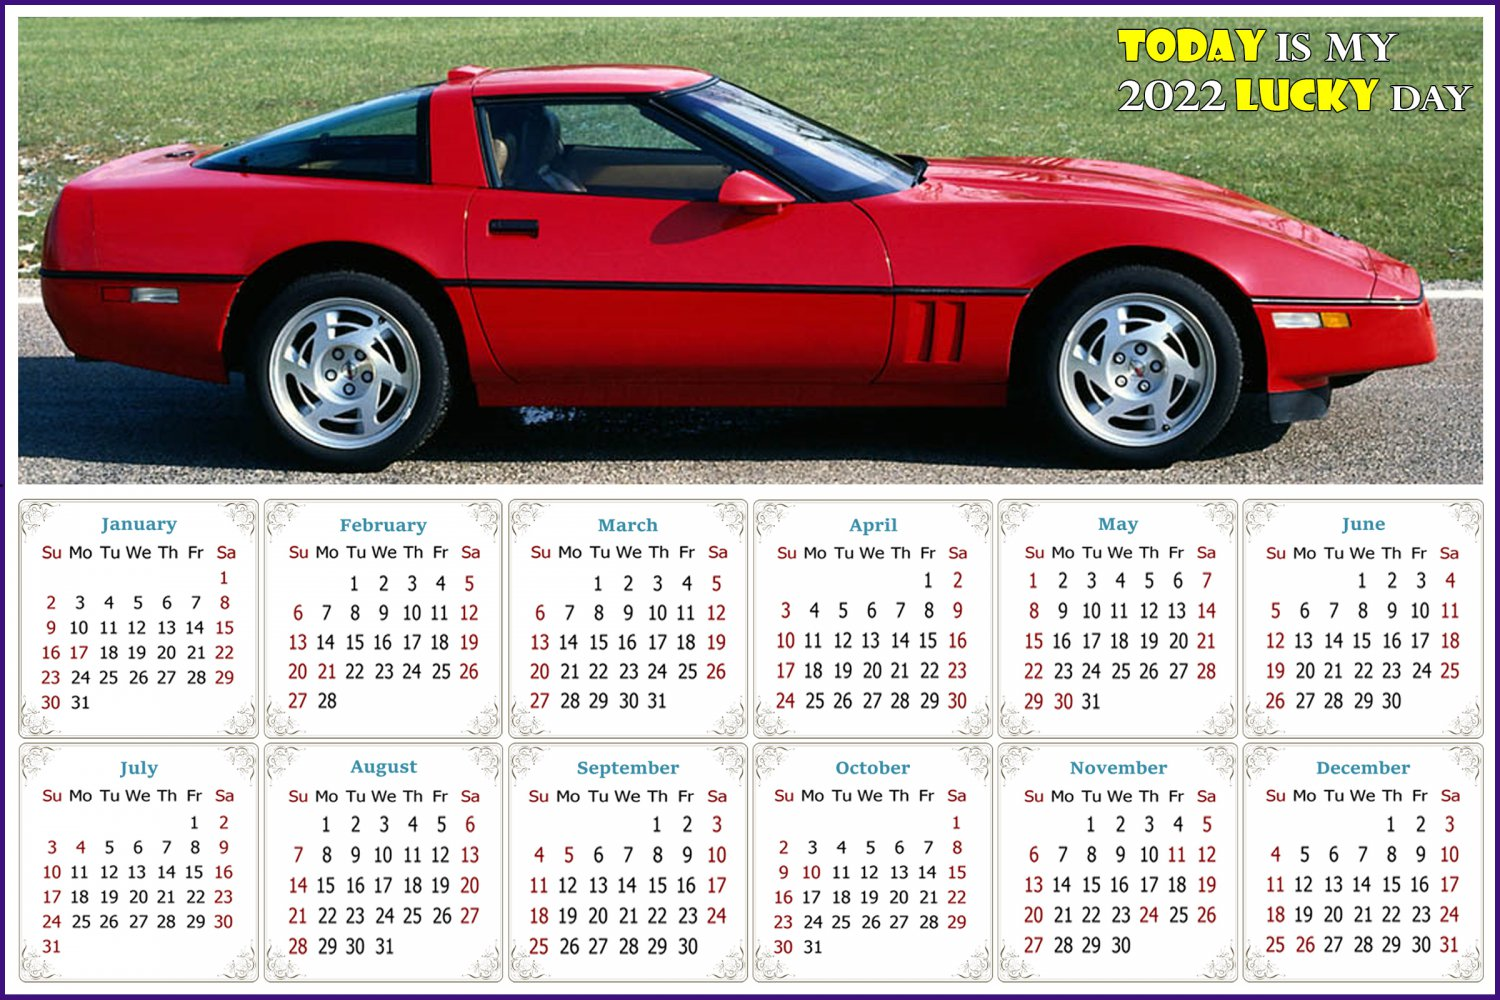 2022 Magnetic Calendar - Calendar Magnets - Today is my Lucky Day - Cars Edition #46